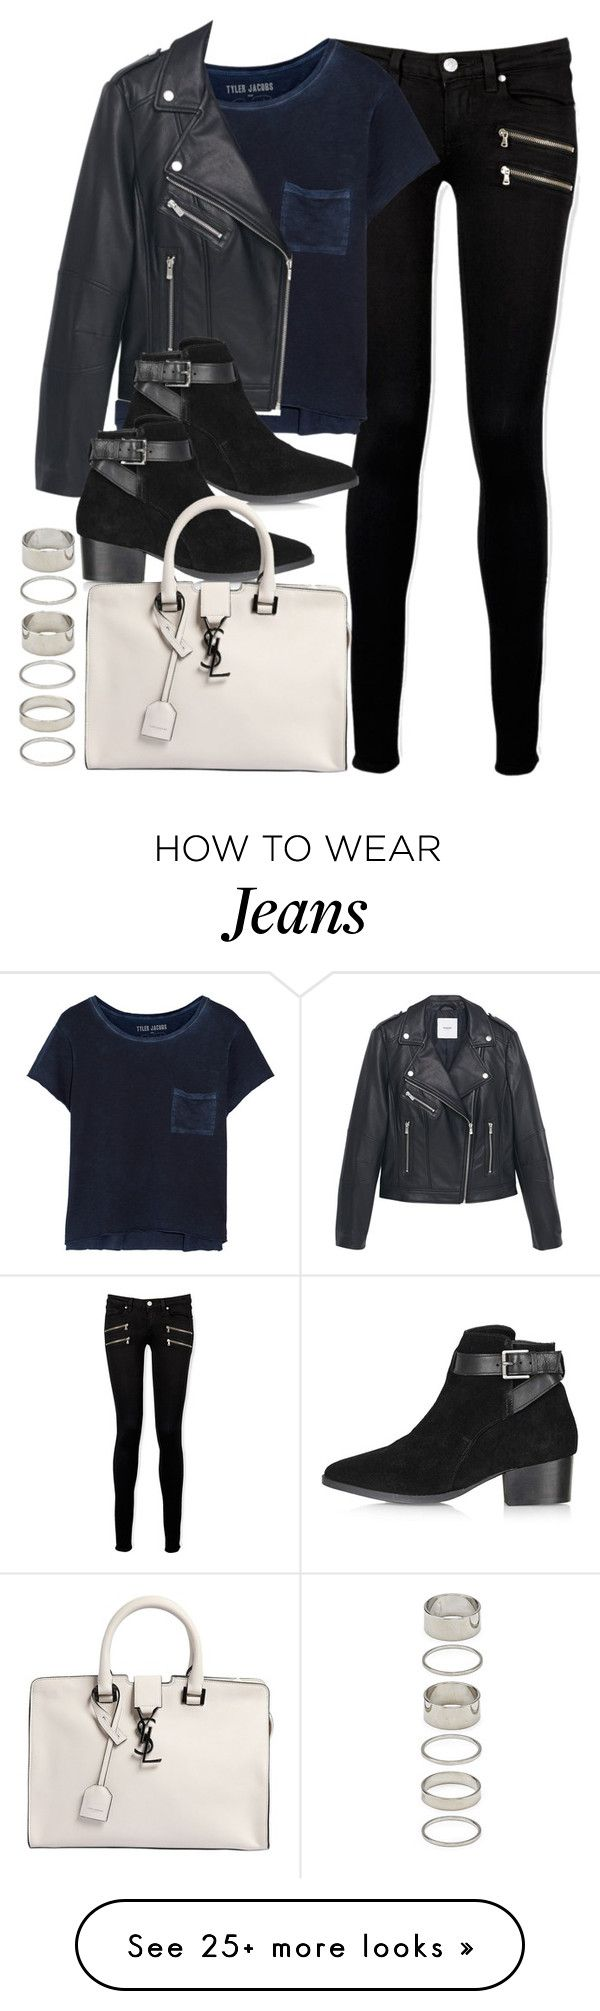 """""""Style #9877"""" by vany-alvarado on Polyvore featuring Paige Denim, MANGO, Topshop, Yves Saint Laurent and Forever 21"""